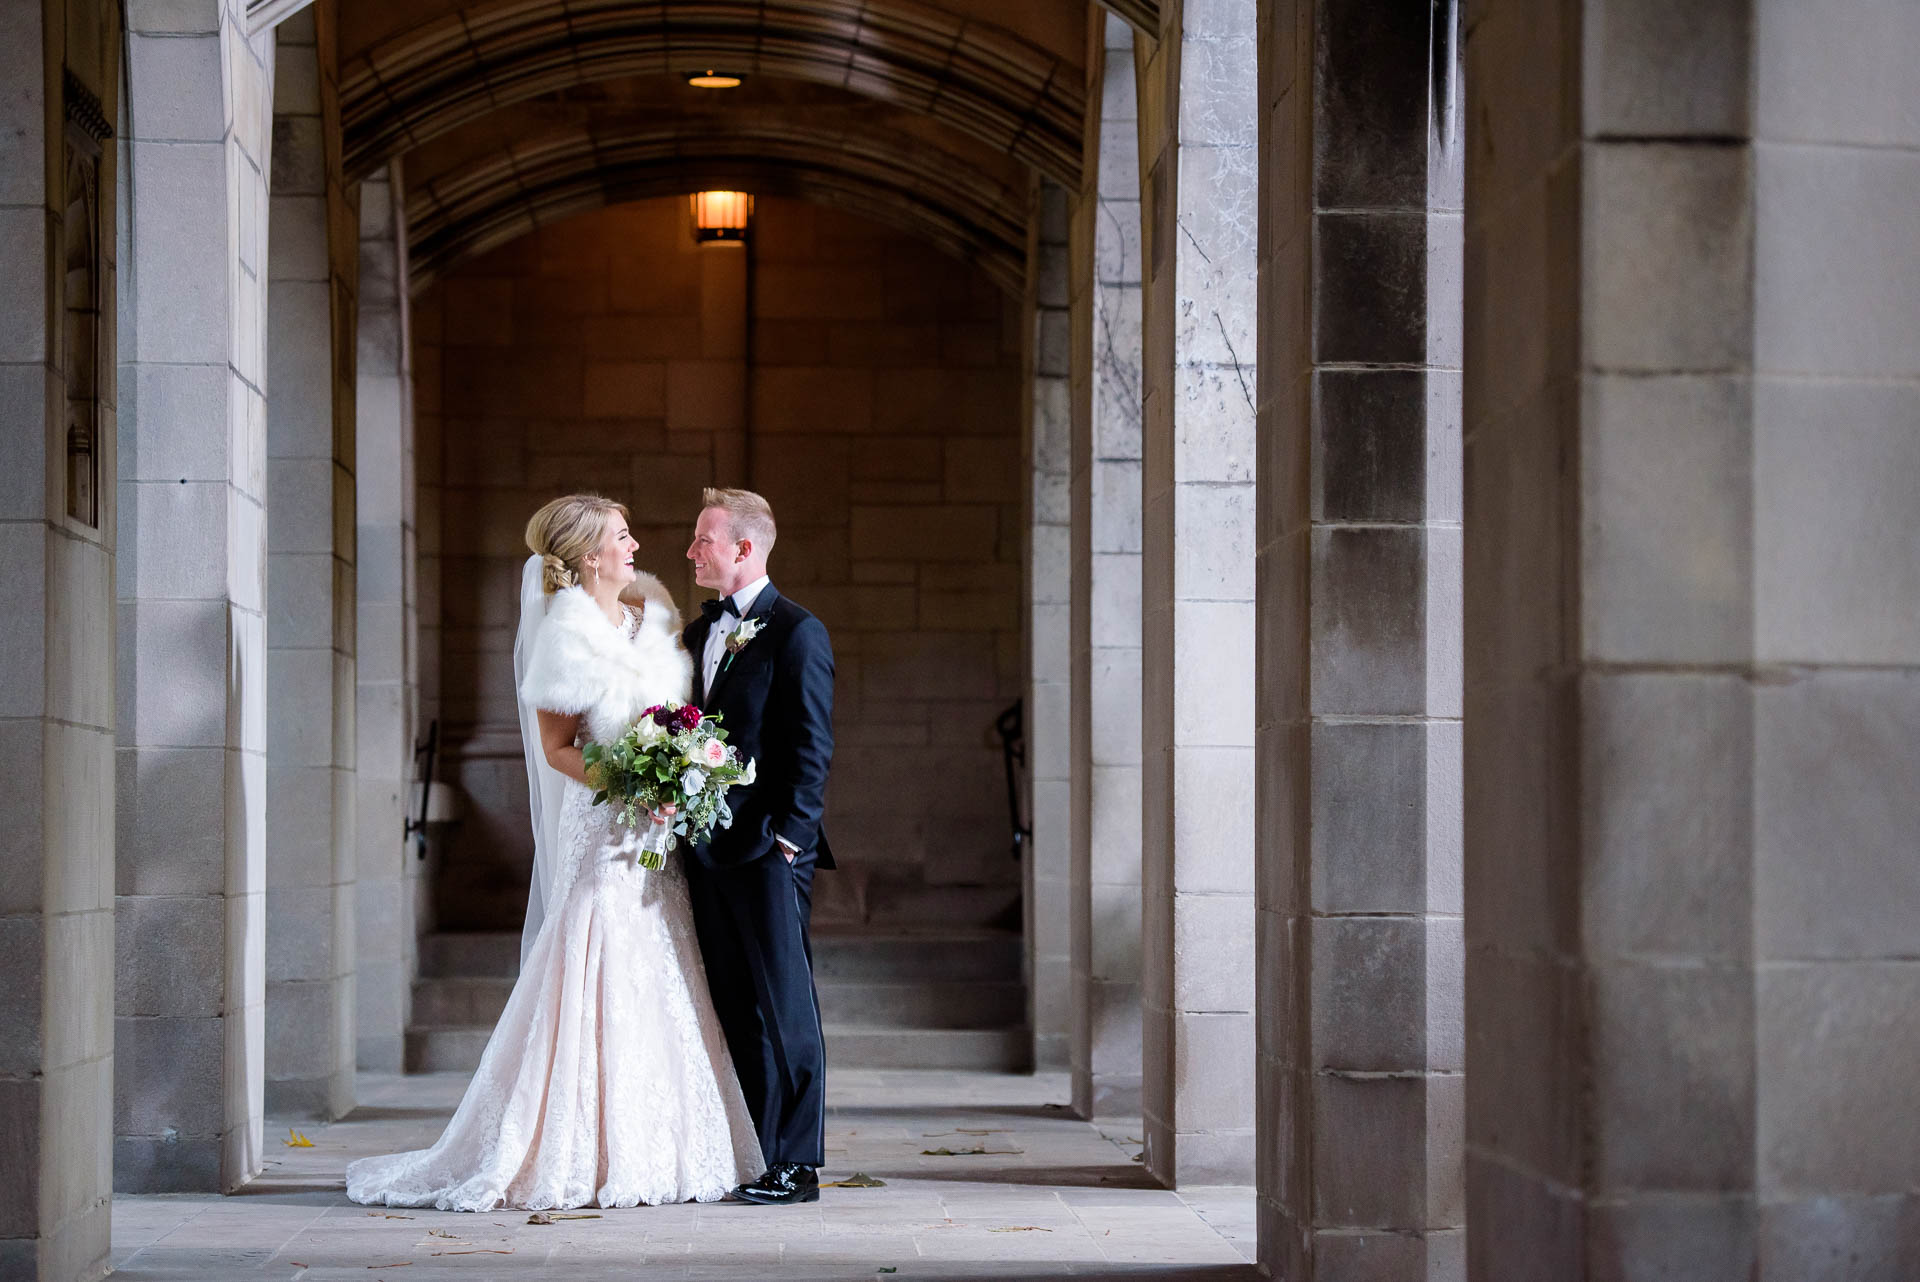 Bride and groom portrait at Fourth Presbyterian Church in Chicago.